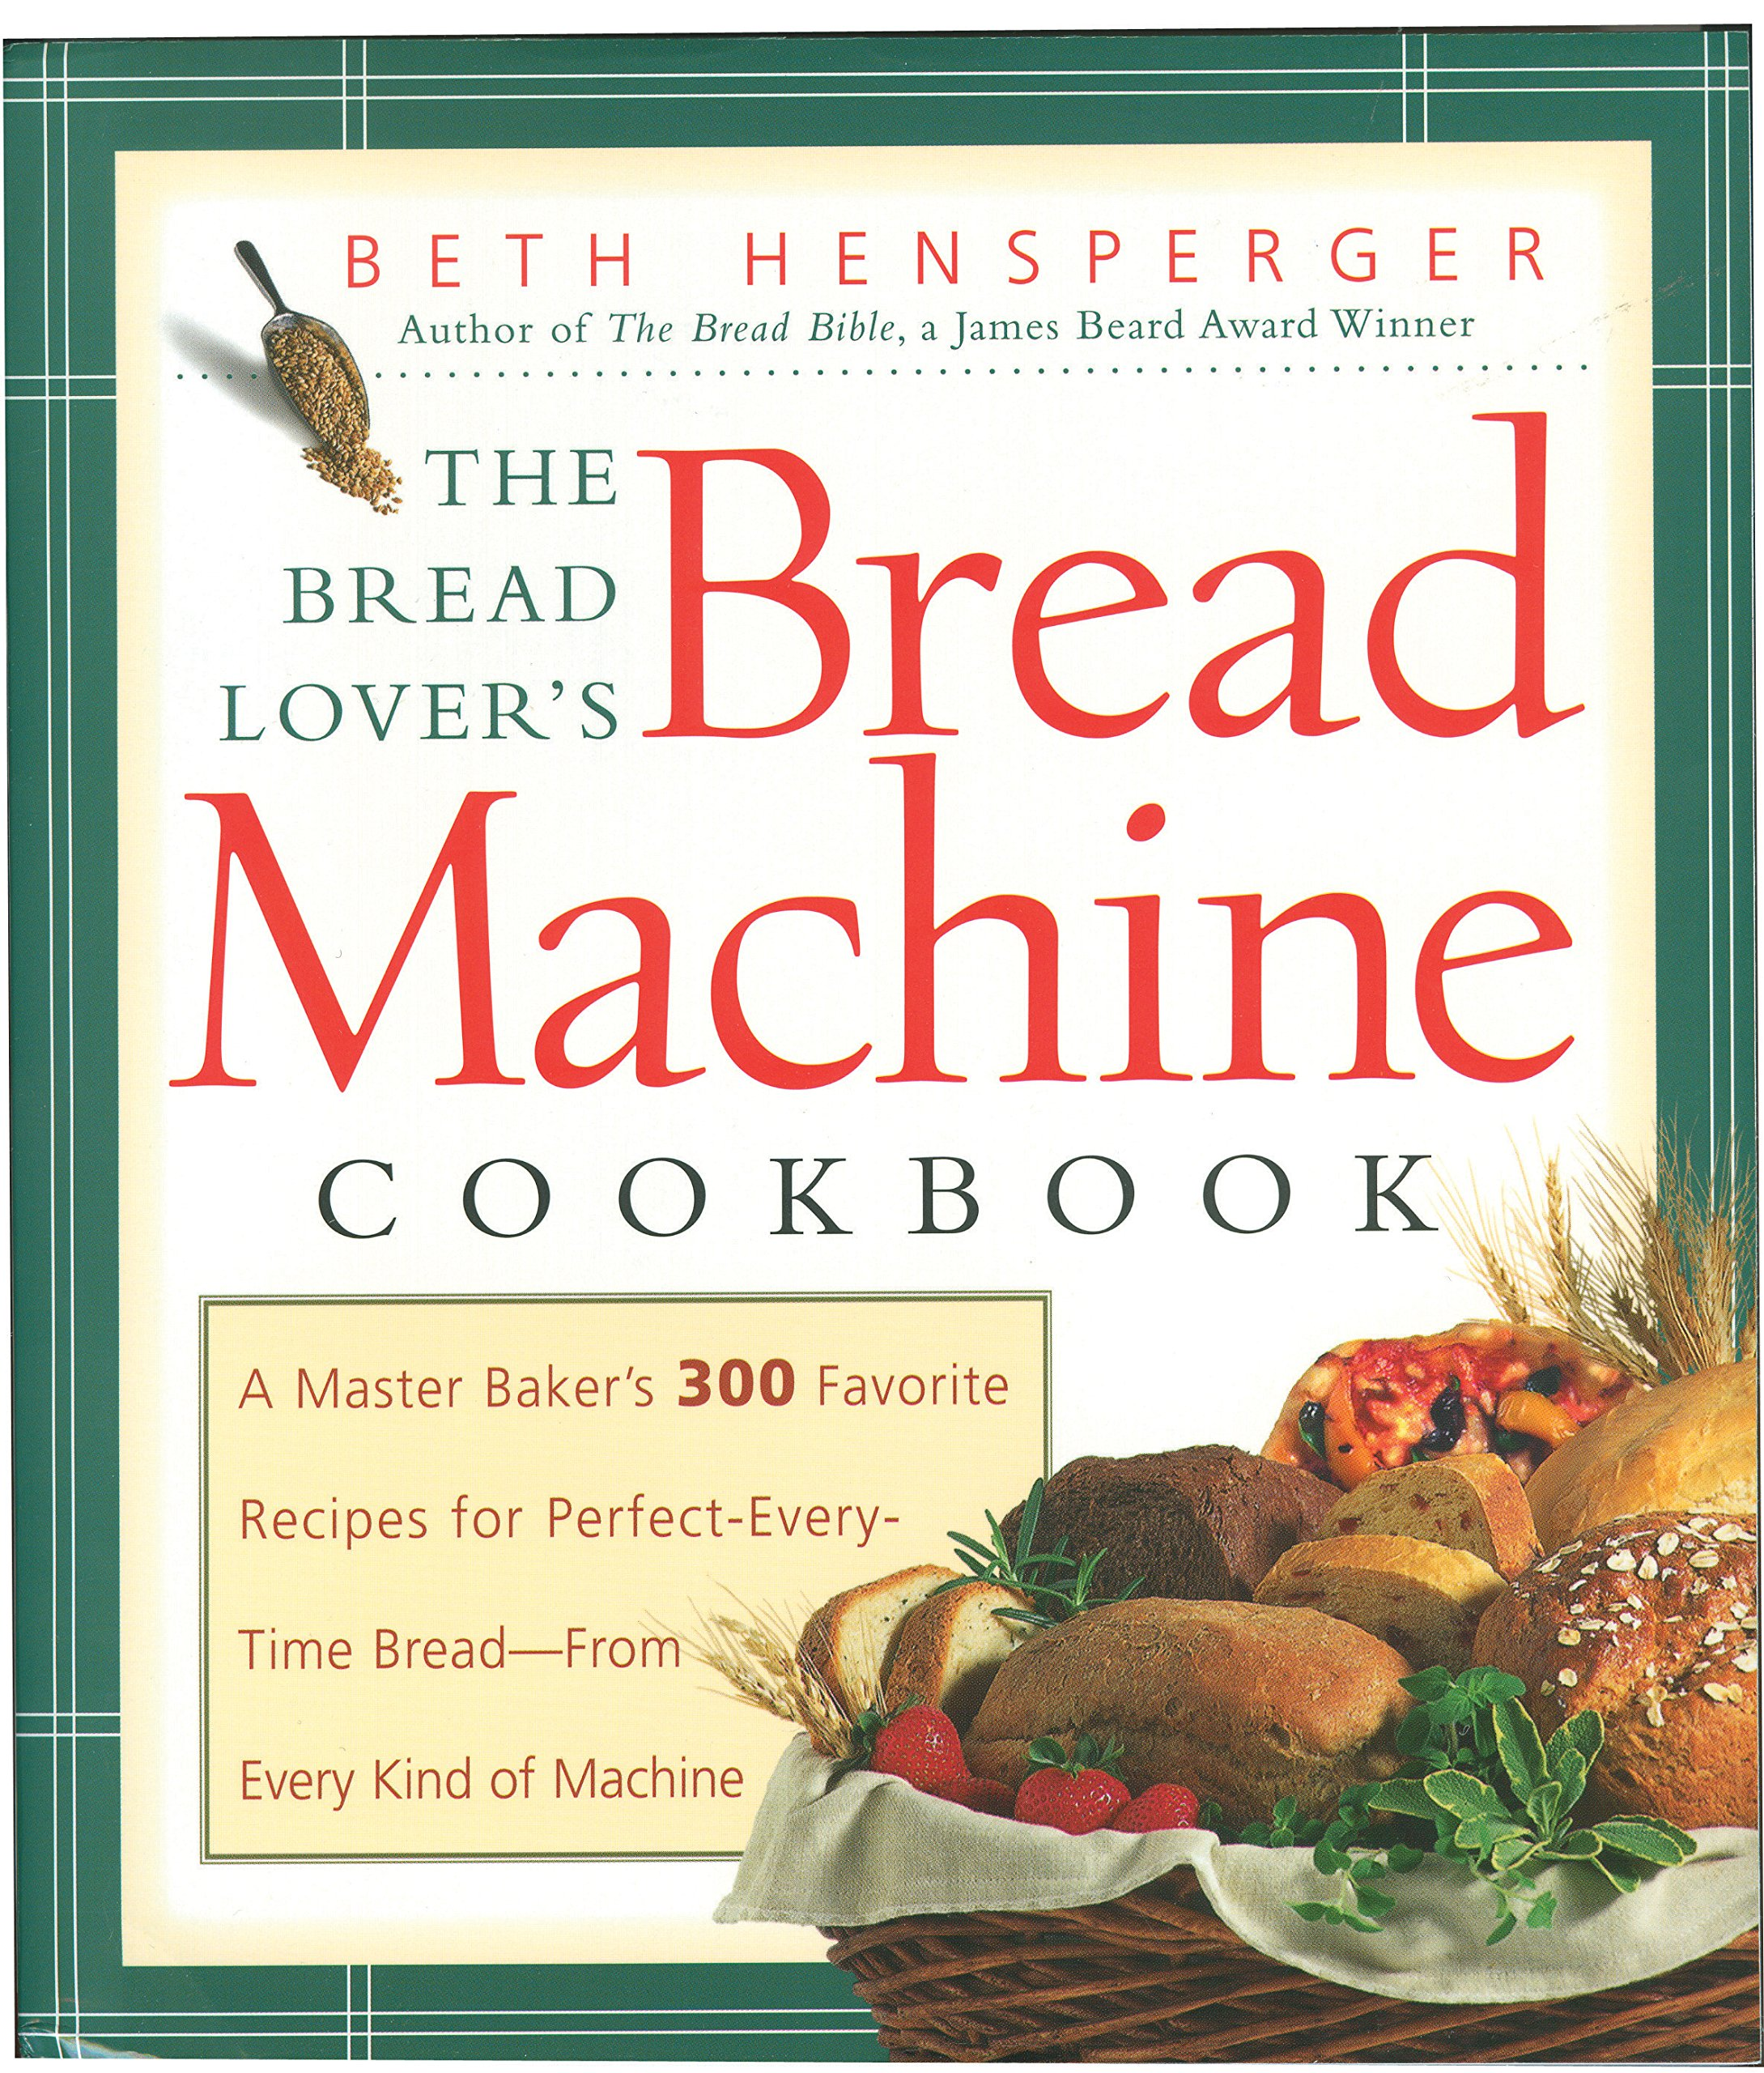 The Bread Lover's Bread Machine Cookbook: A Master Baker's 300 Favorite  Recipes for Perfect-Every-Time Bread-From Every Kind of Machine: Beth  Hensperger: ...